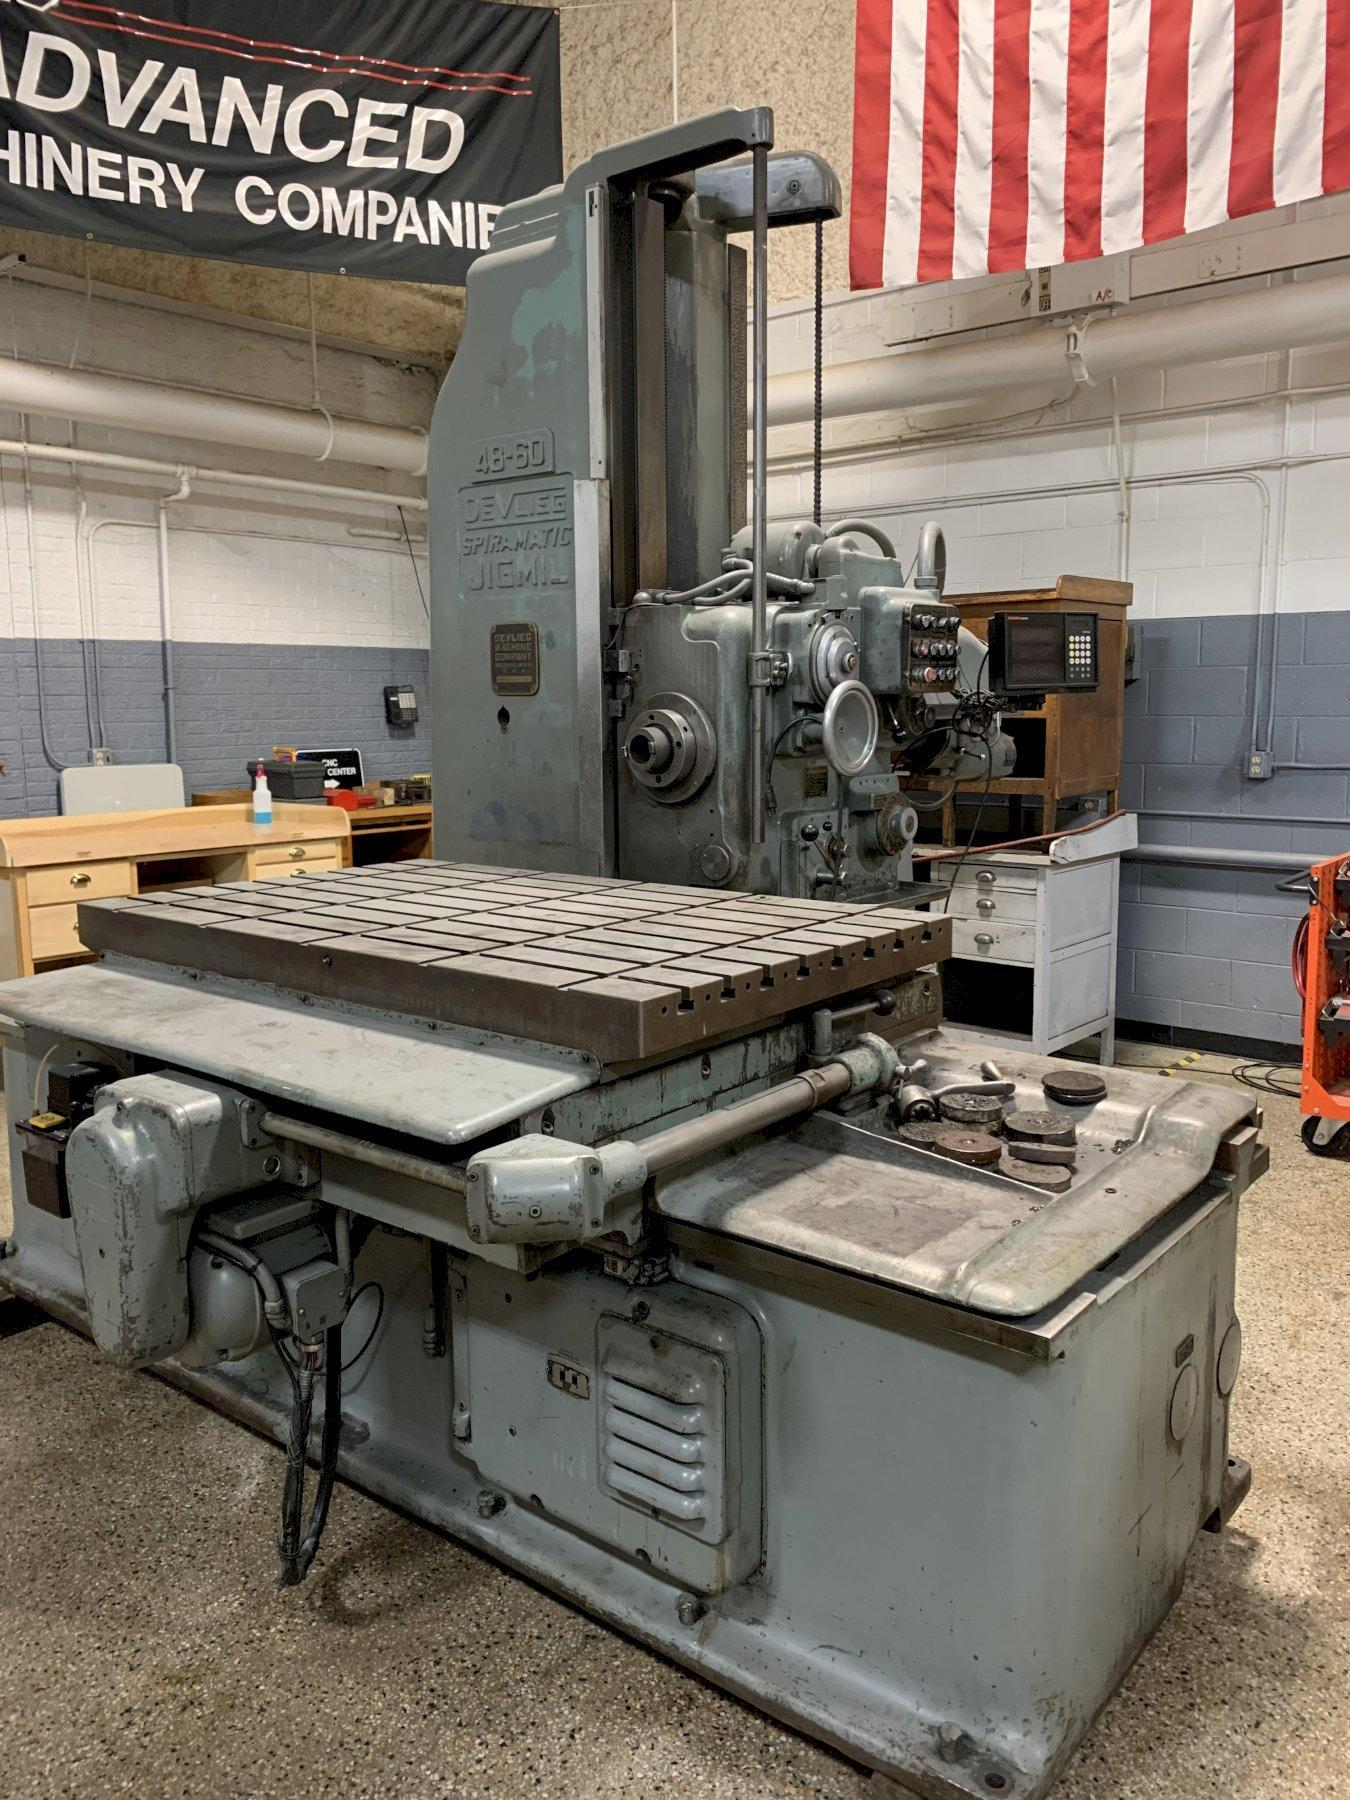 Devlieg 4B-60 Horizontal Jig Mil Boring Mill, S/N 11-191. As is price.